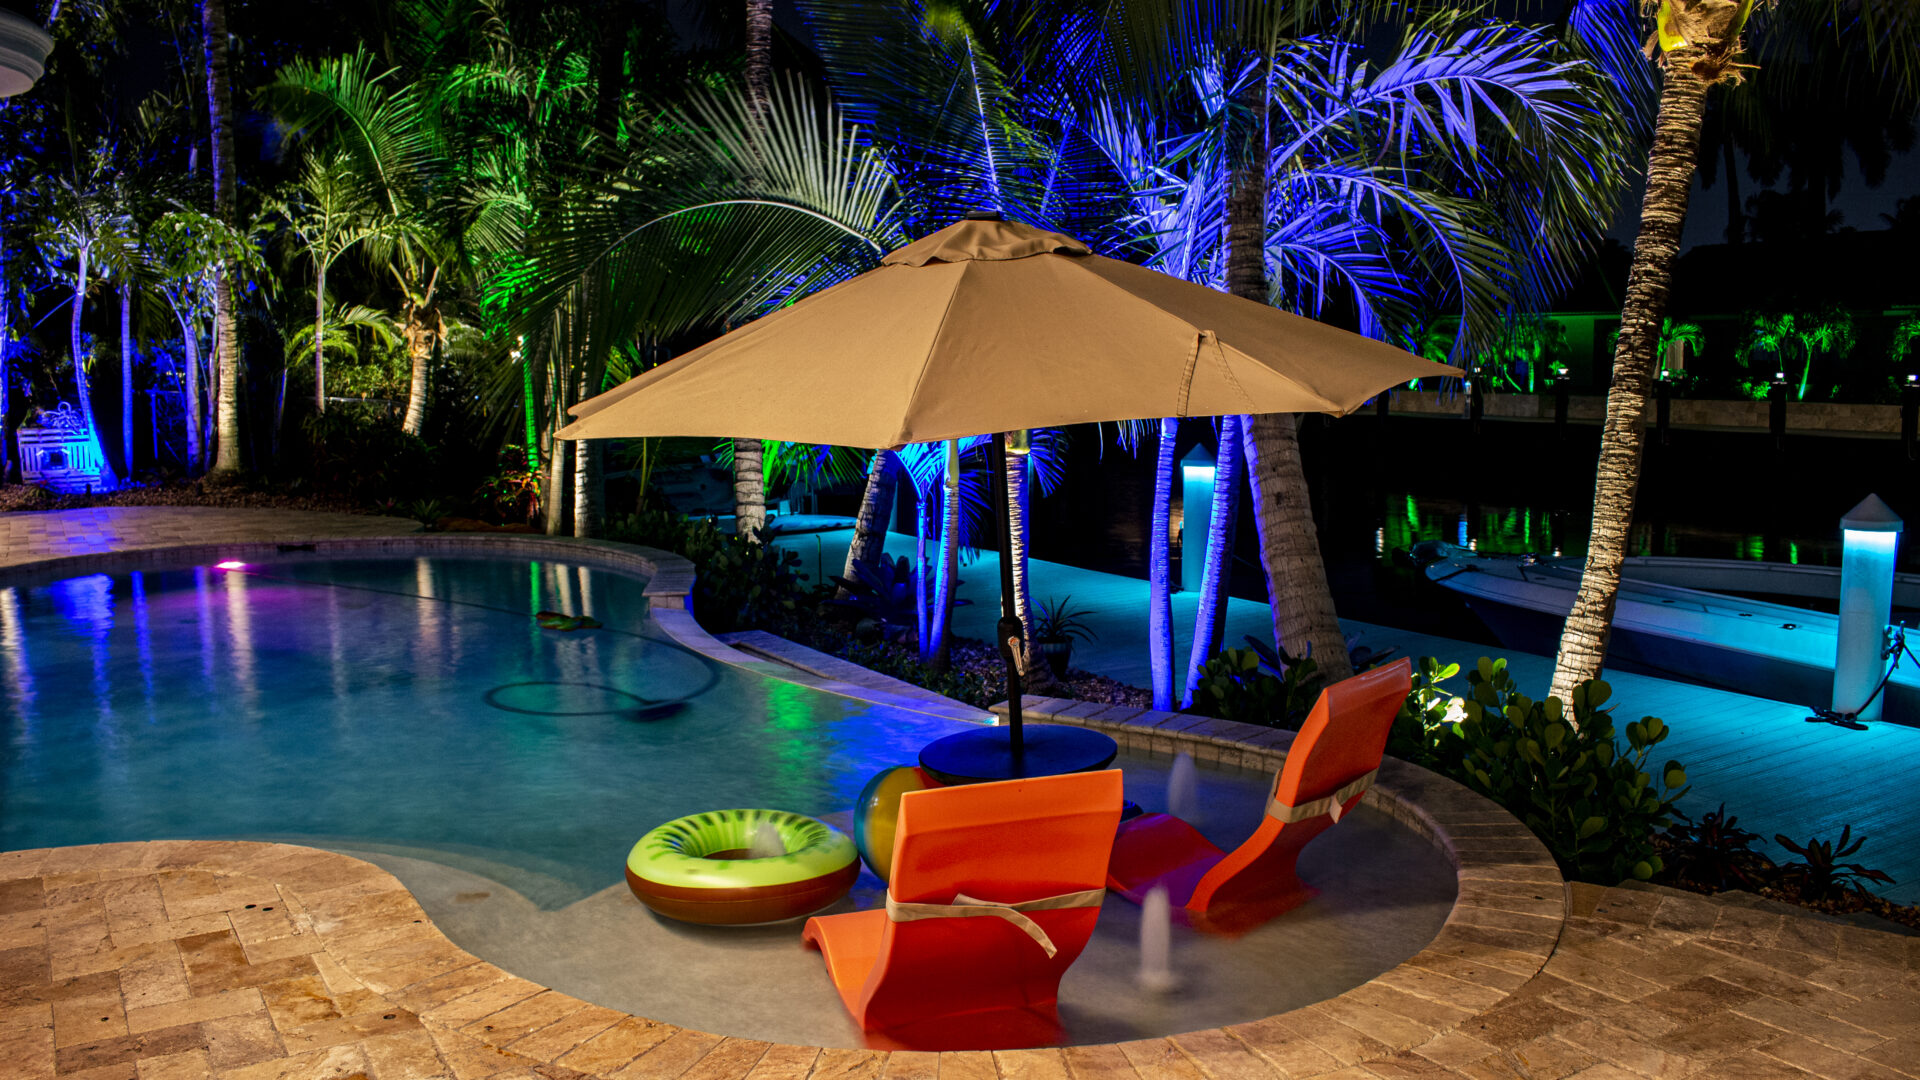 Residential Landscape Lighting- Pool and Palm Trees Umbrella